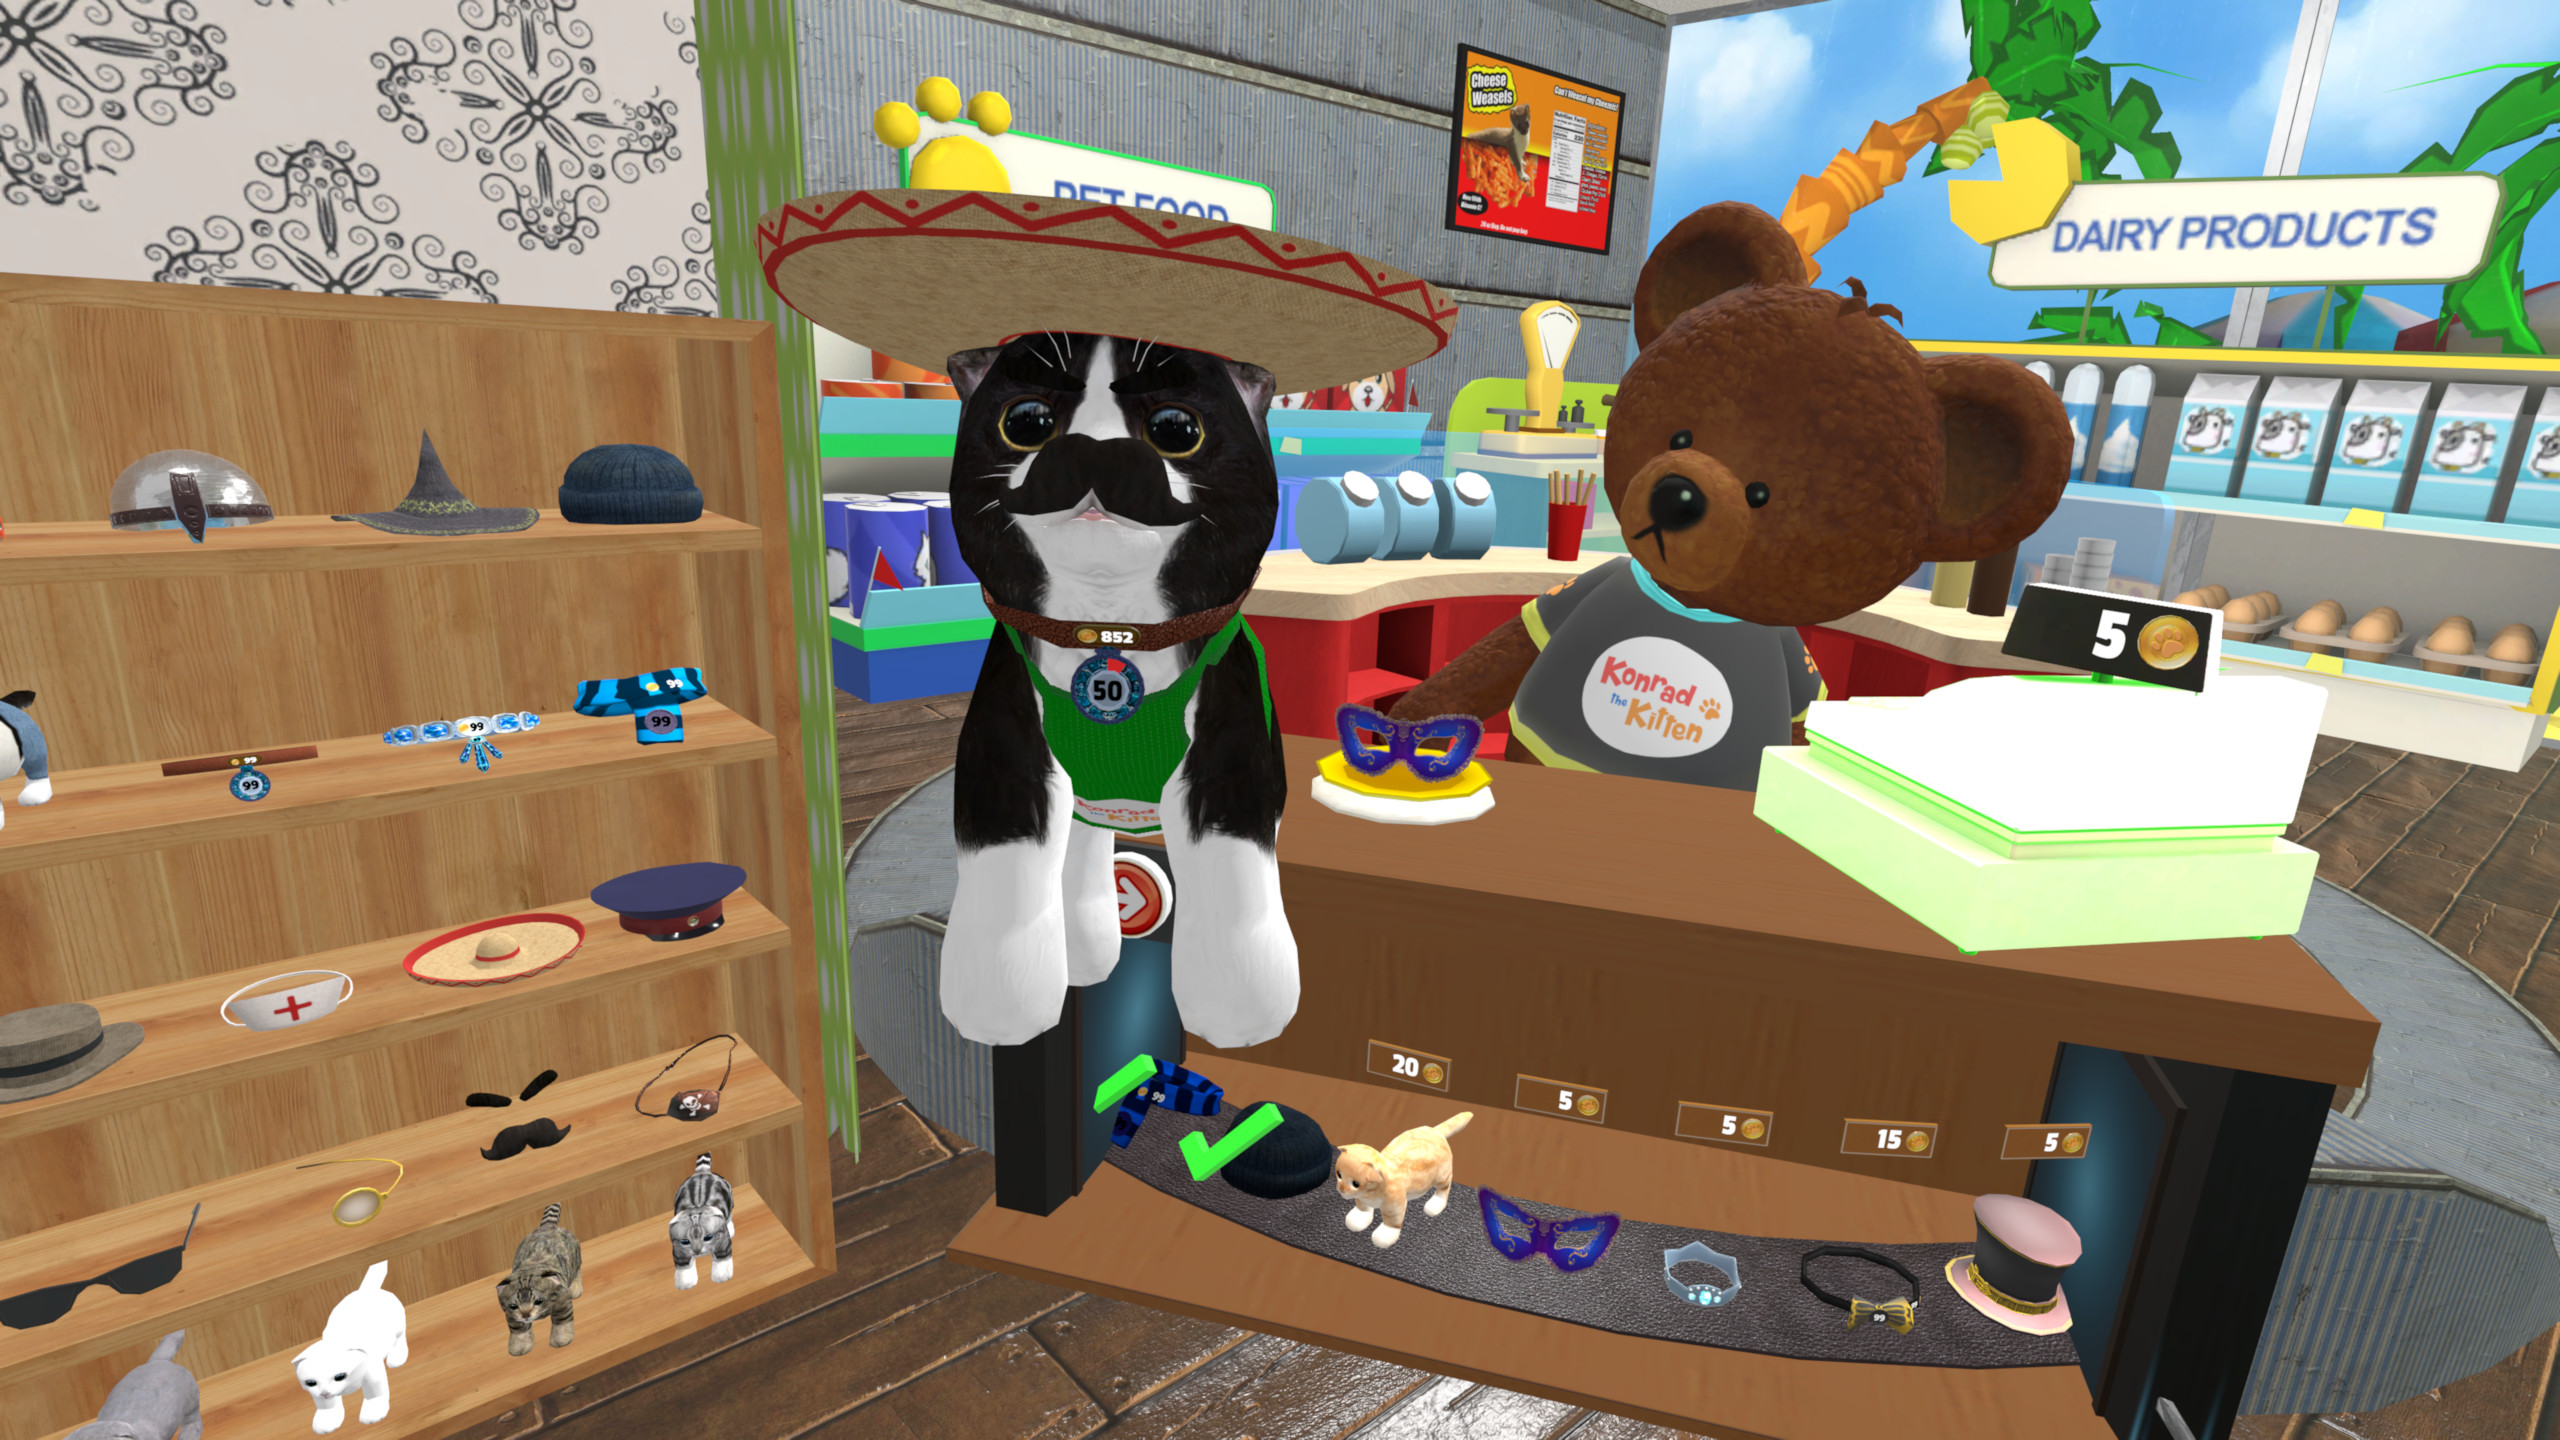 Konrad-the-Kitten-Oculus-Rift-HTC-Vive-Steam